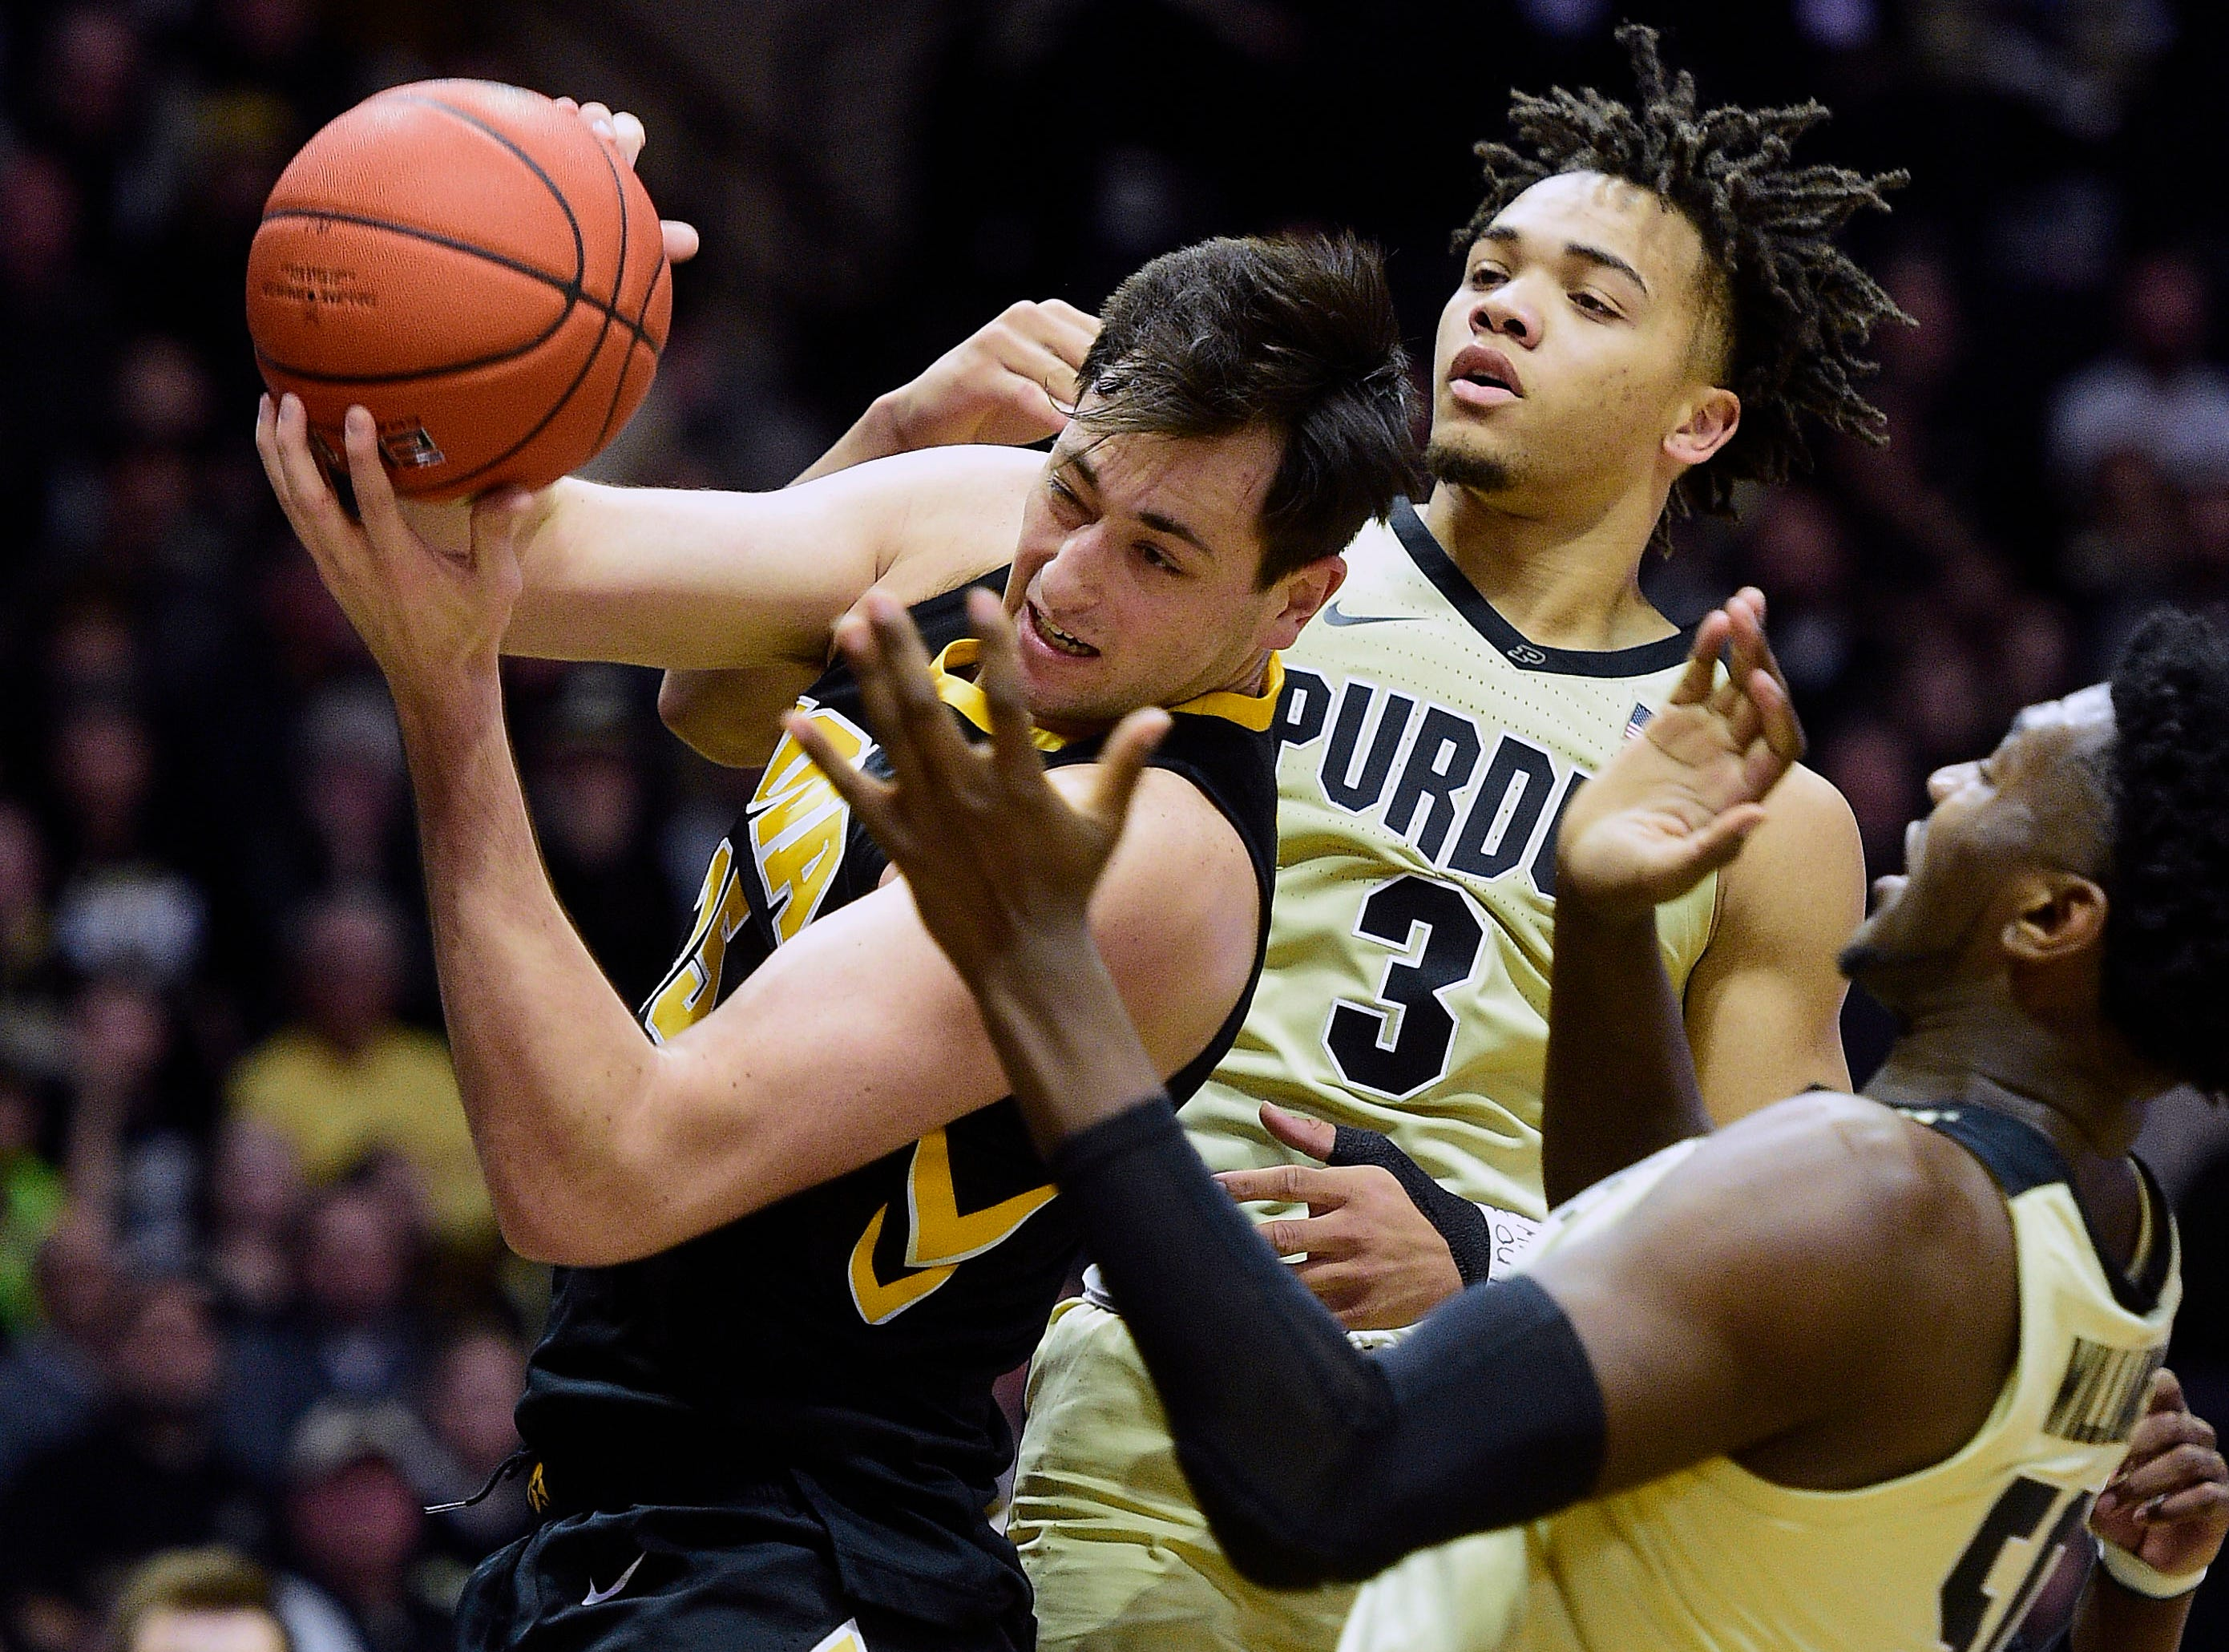 Jan 3, 2019; West Lafayette, IN, USA; Purdue Boilermakers   guard Carsen Edwards (3) and Purdue Boilermakers forward Trevon Williams (50) battle Iowa Hawkeyes forward Nicholas Baer (51) for the ball  in the second half at Mackey Arena. Mandatory Credit: Thomas J. Russo-USA TODAY Sports